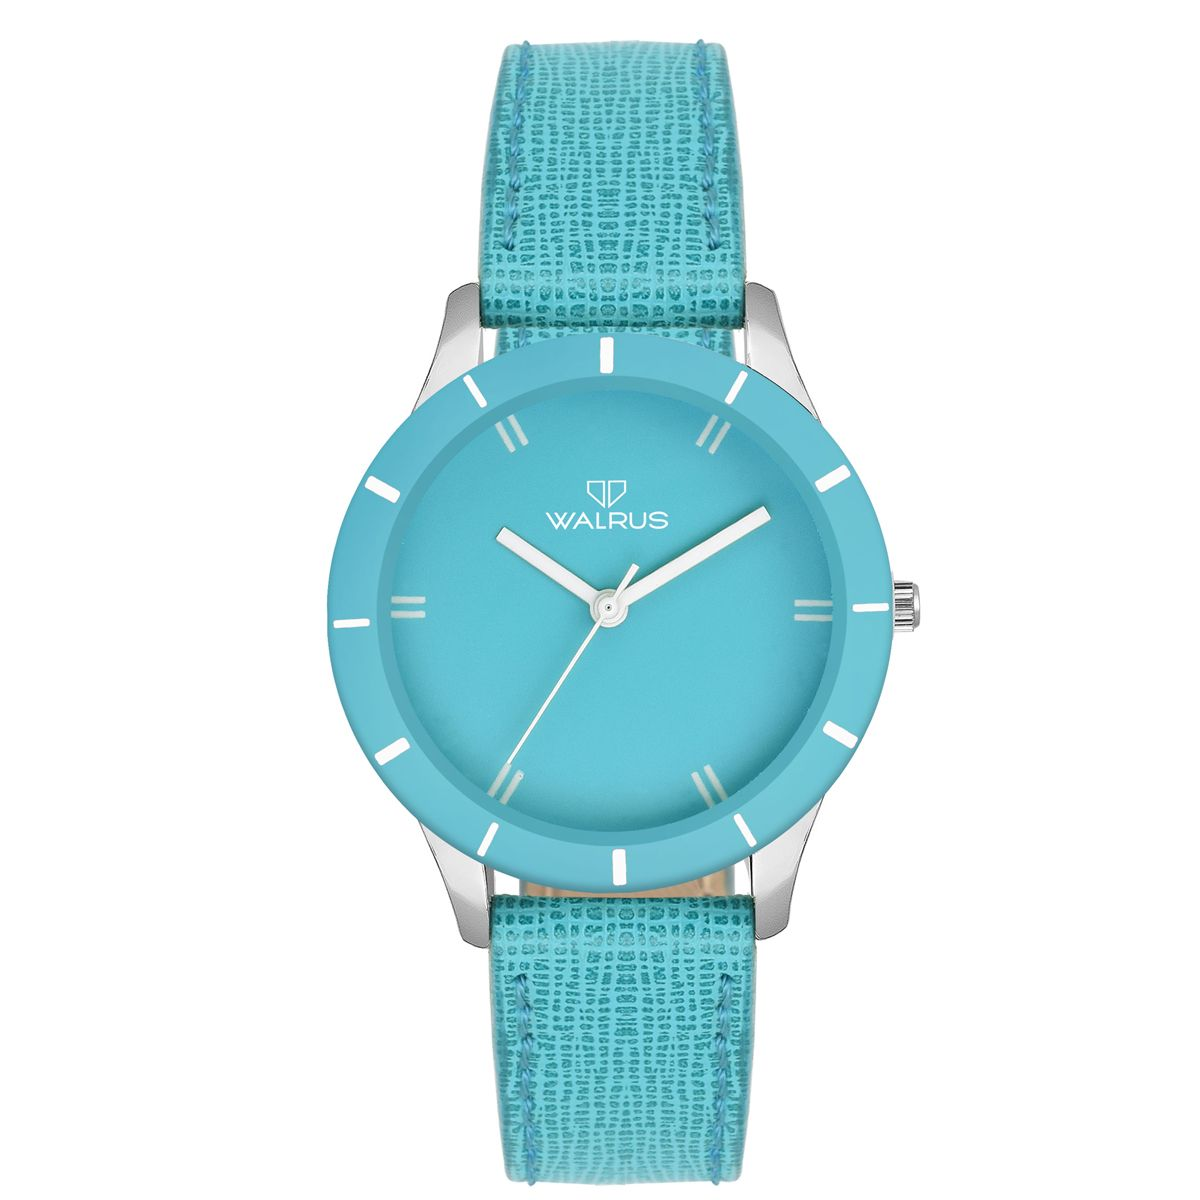 Walrus Eve Cyan Color Analog Women Watch -WWW-Eve -131307